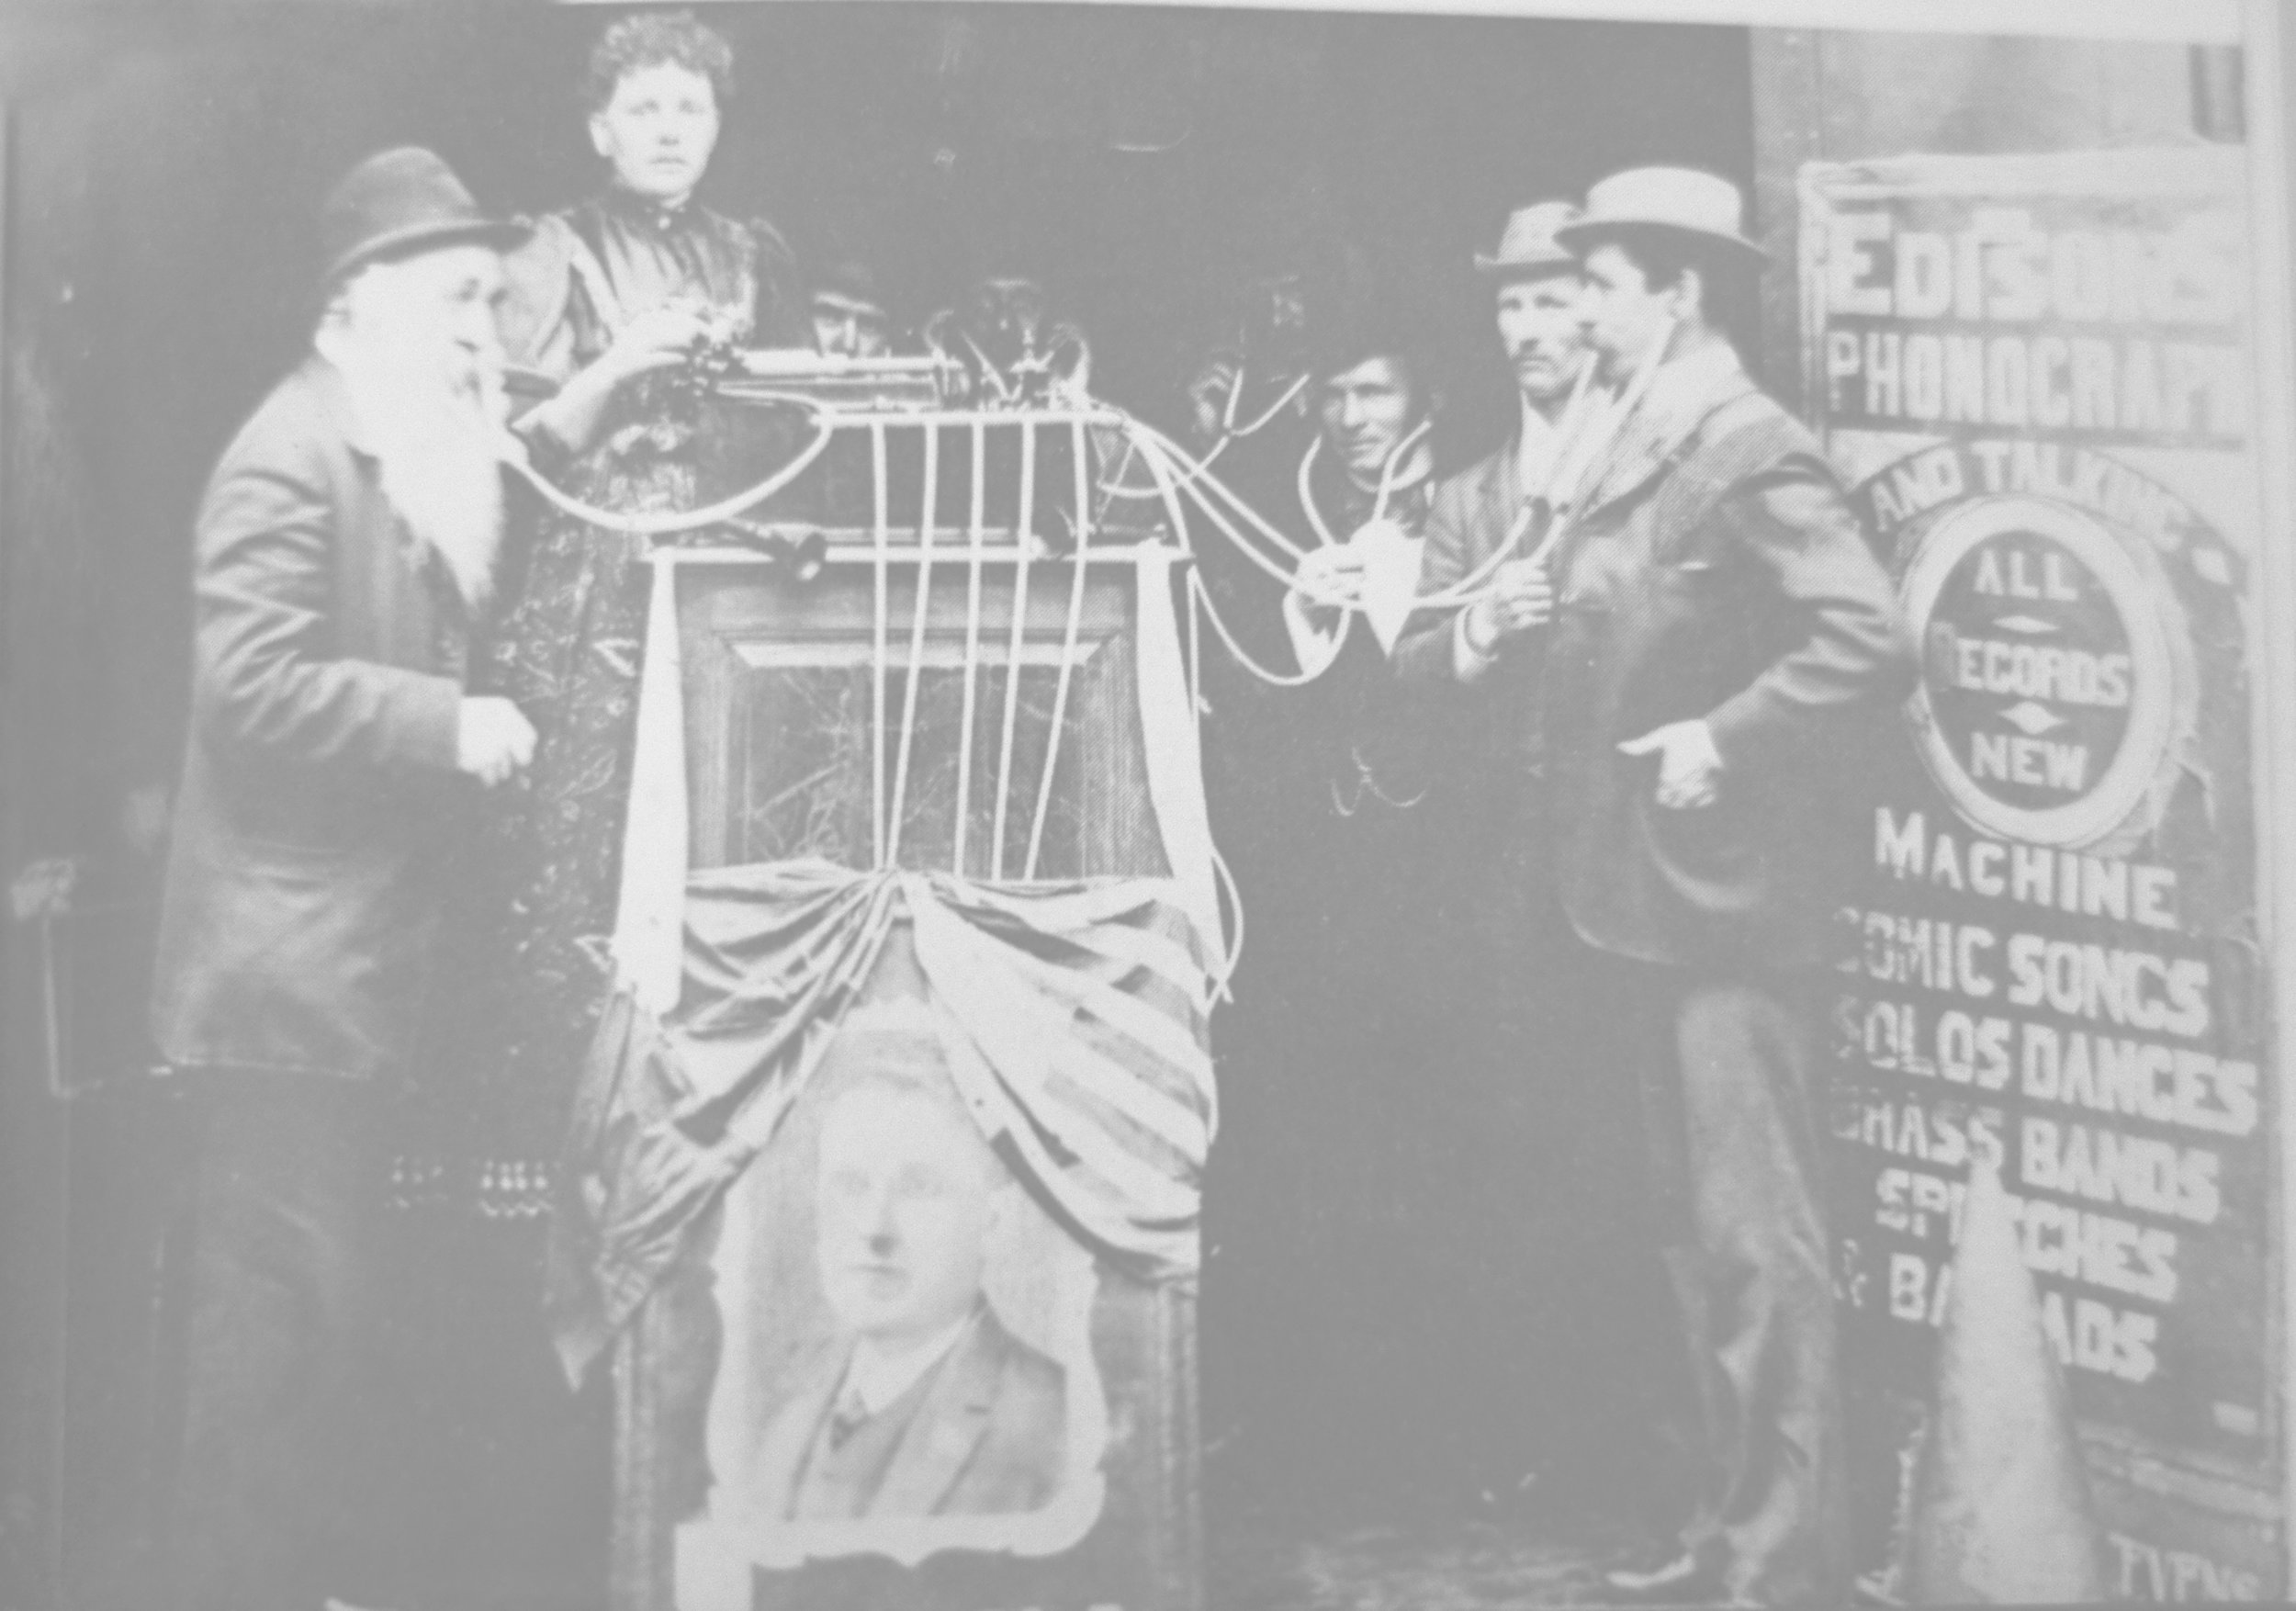 'Edison Machine', the phonograph imported by Frank Cartwright